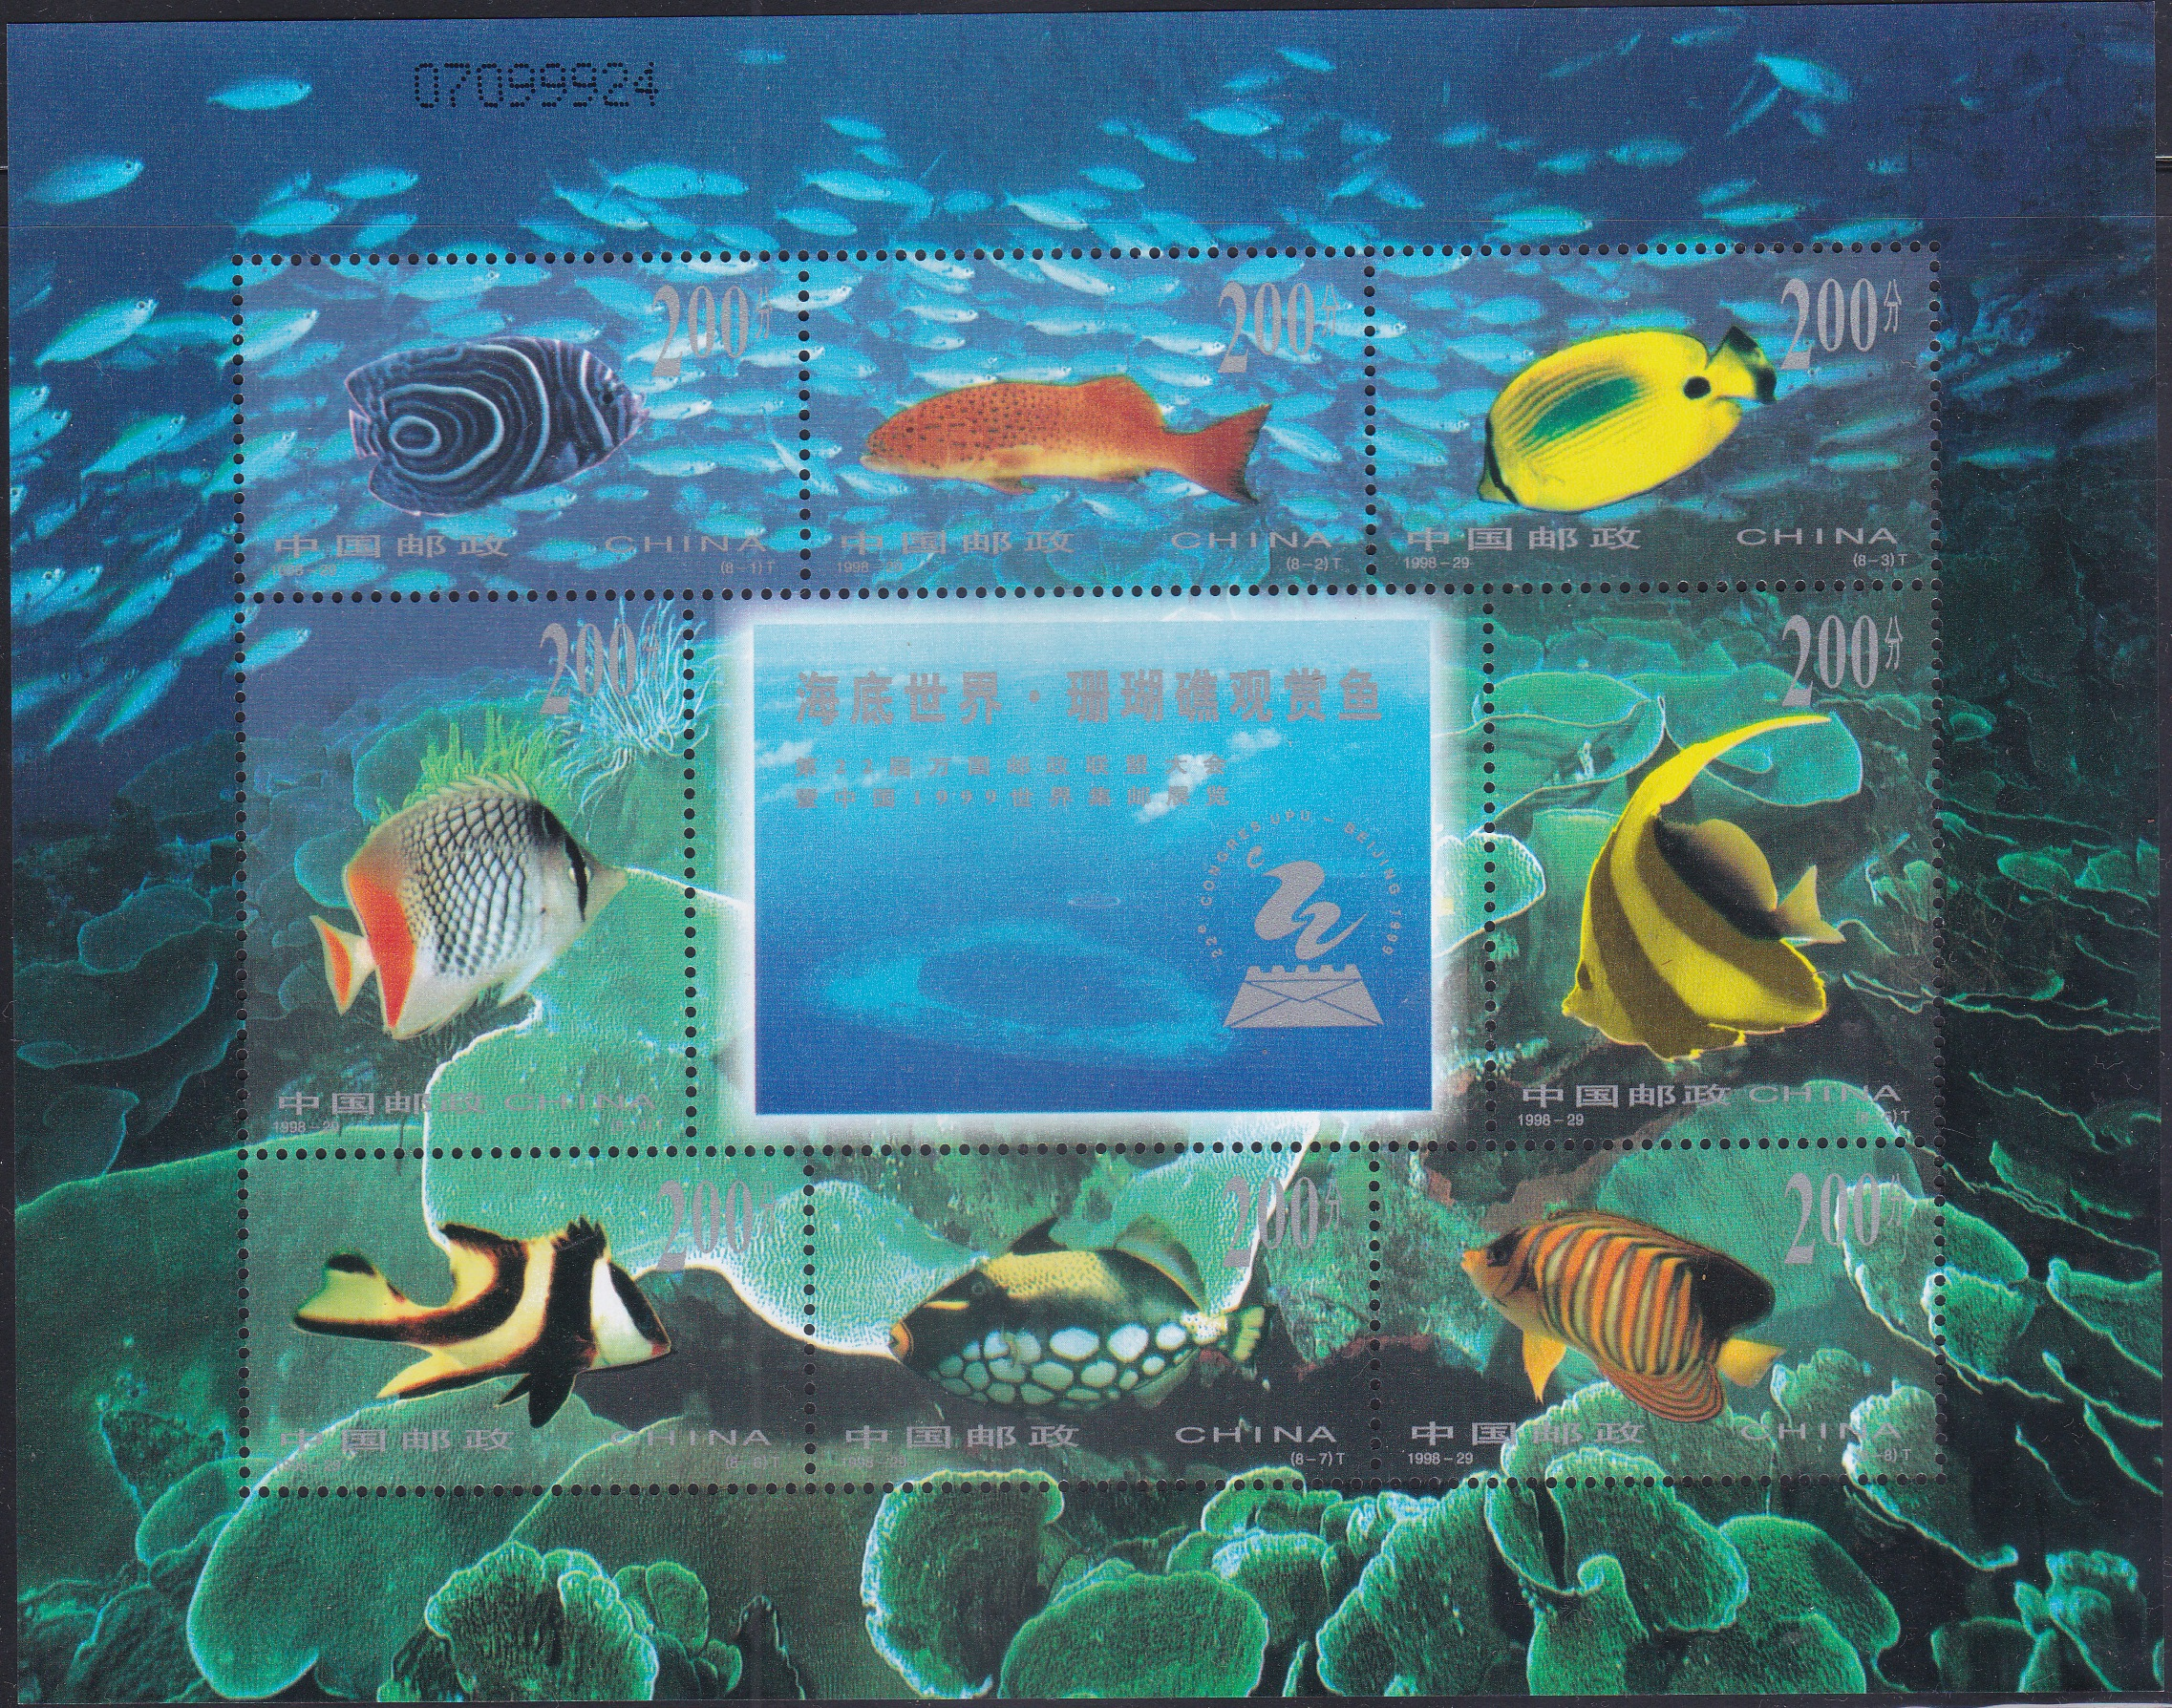 2931 Fish of the Coral Reef - China Stamp Miniature Sheet 1998